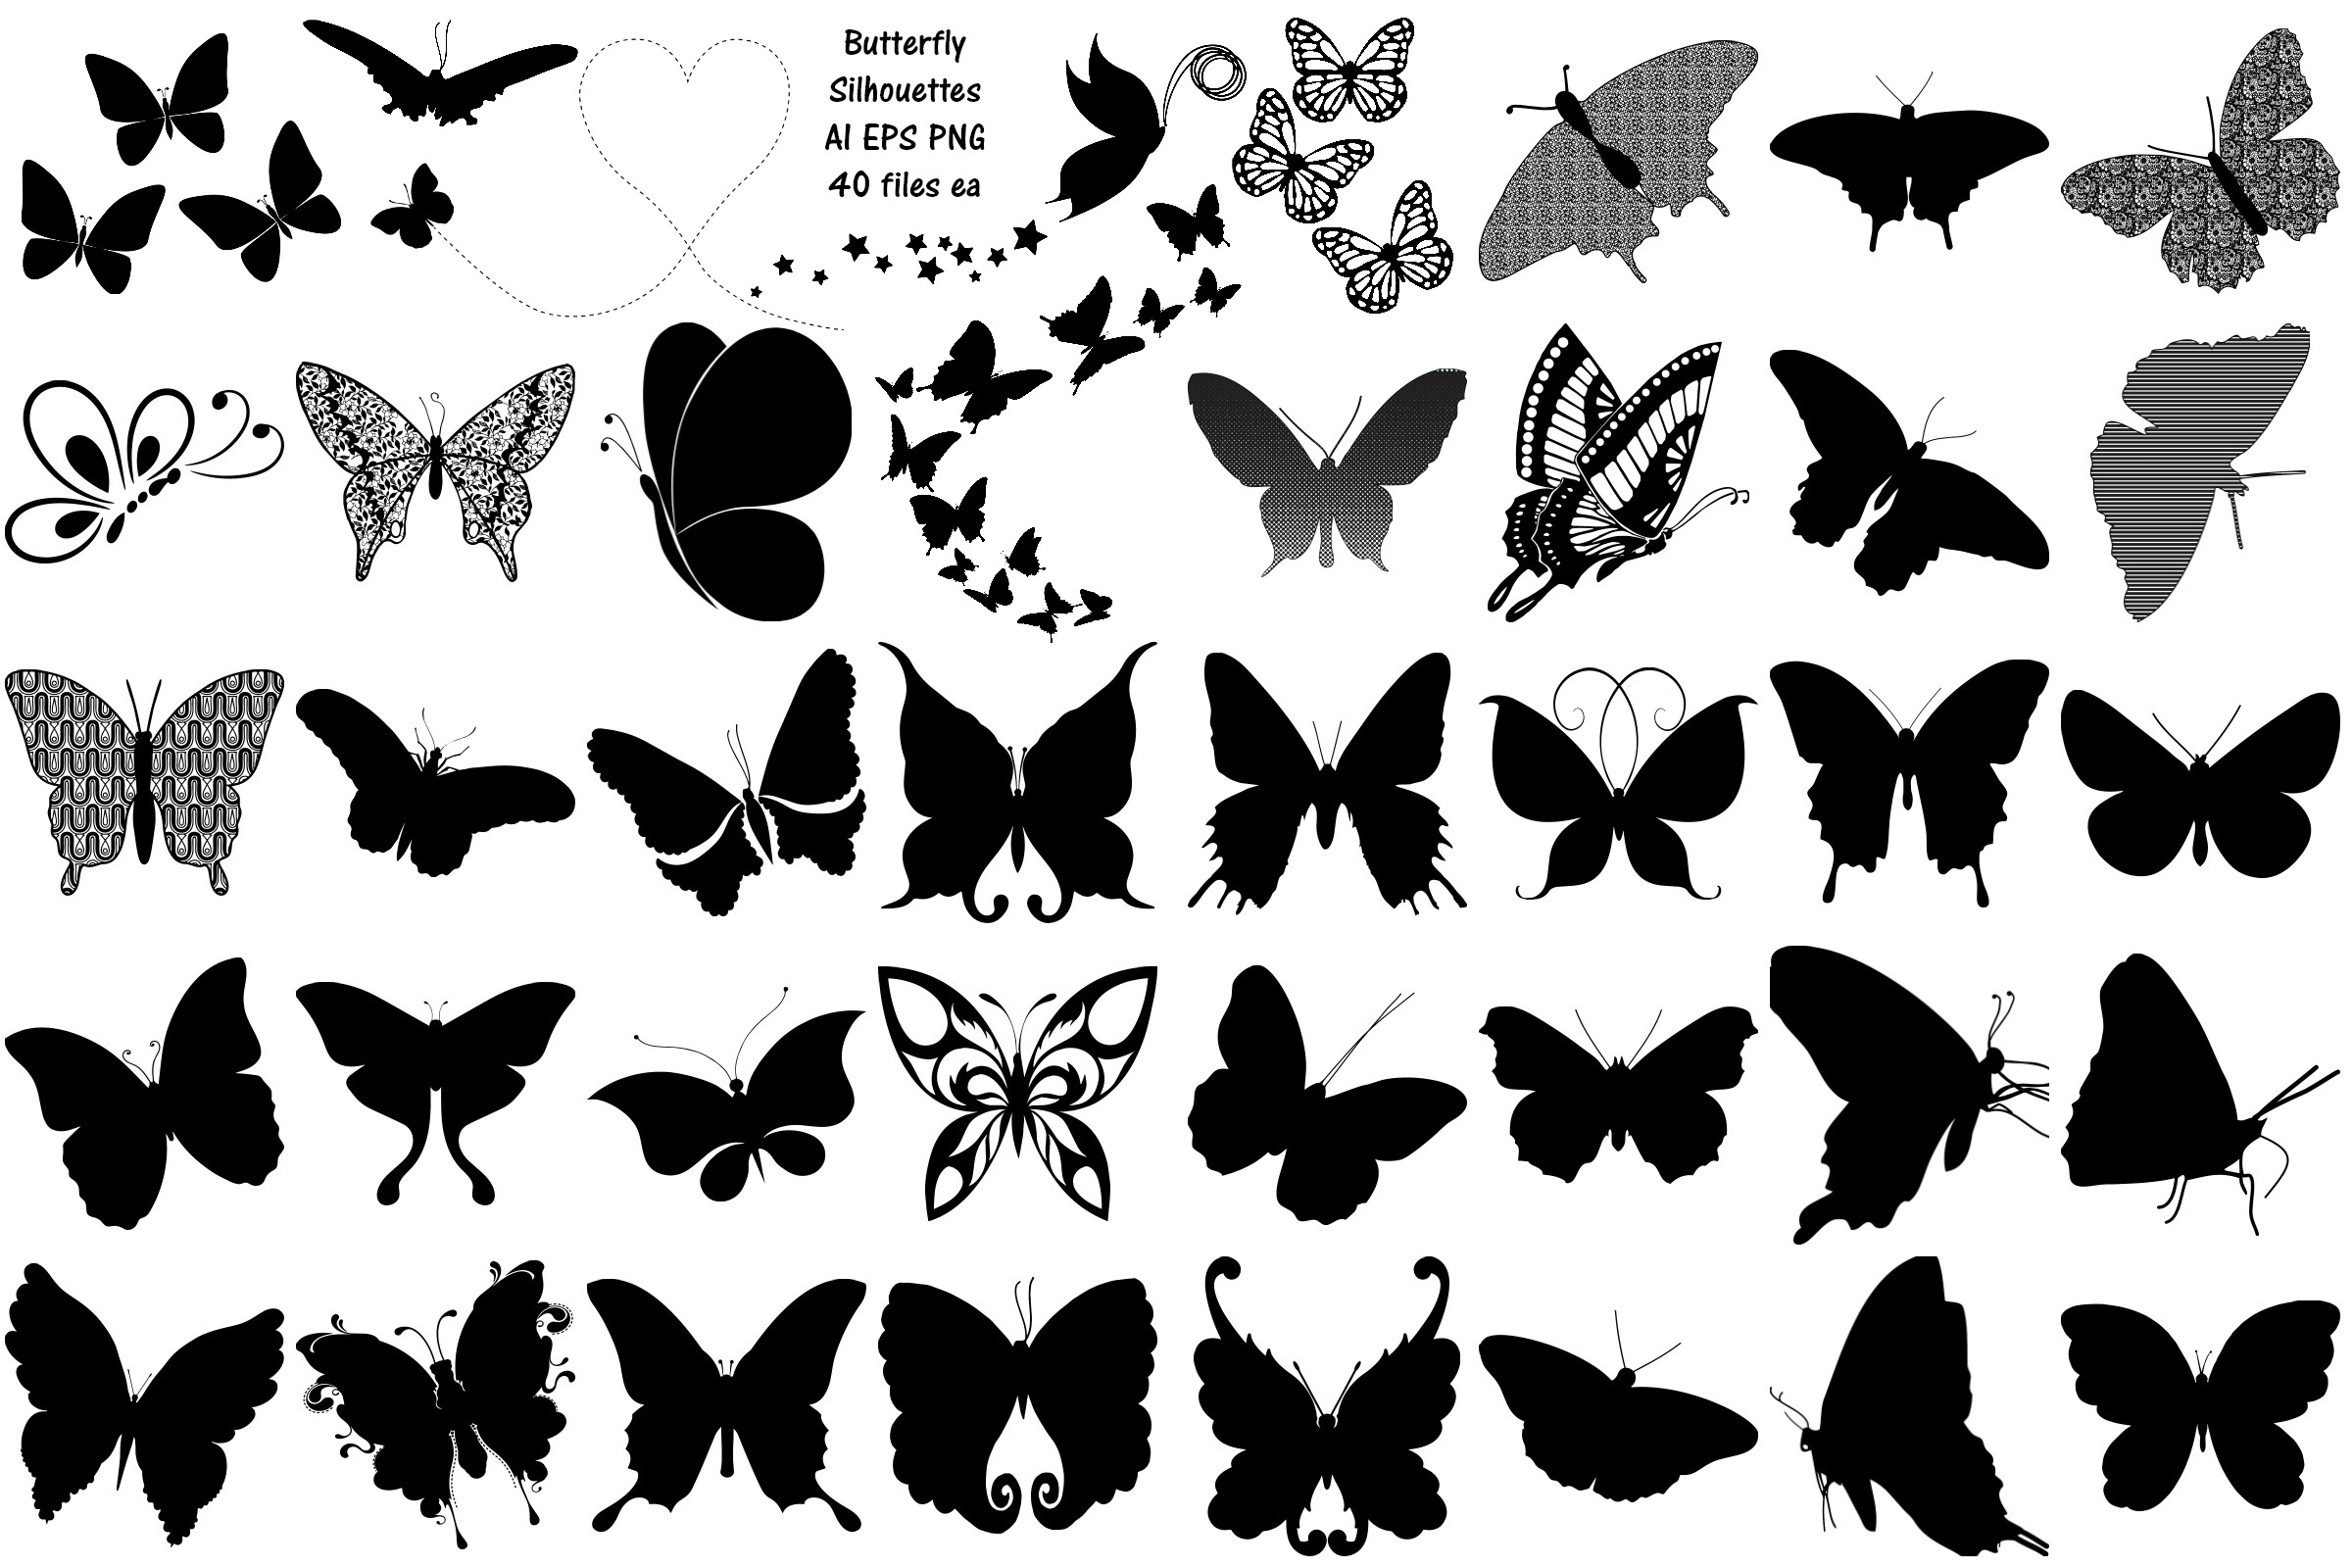 Butterfly Silhouettes AI EPS PNG example image 1